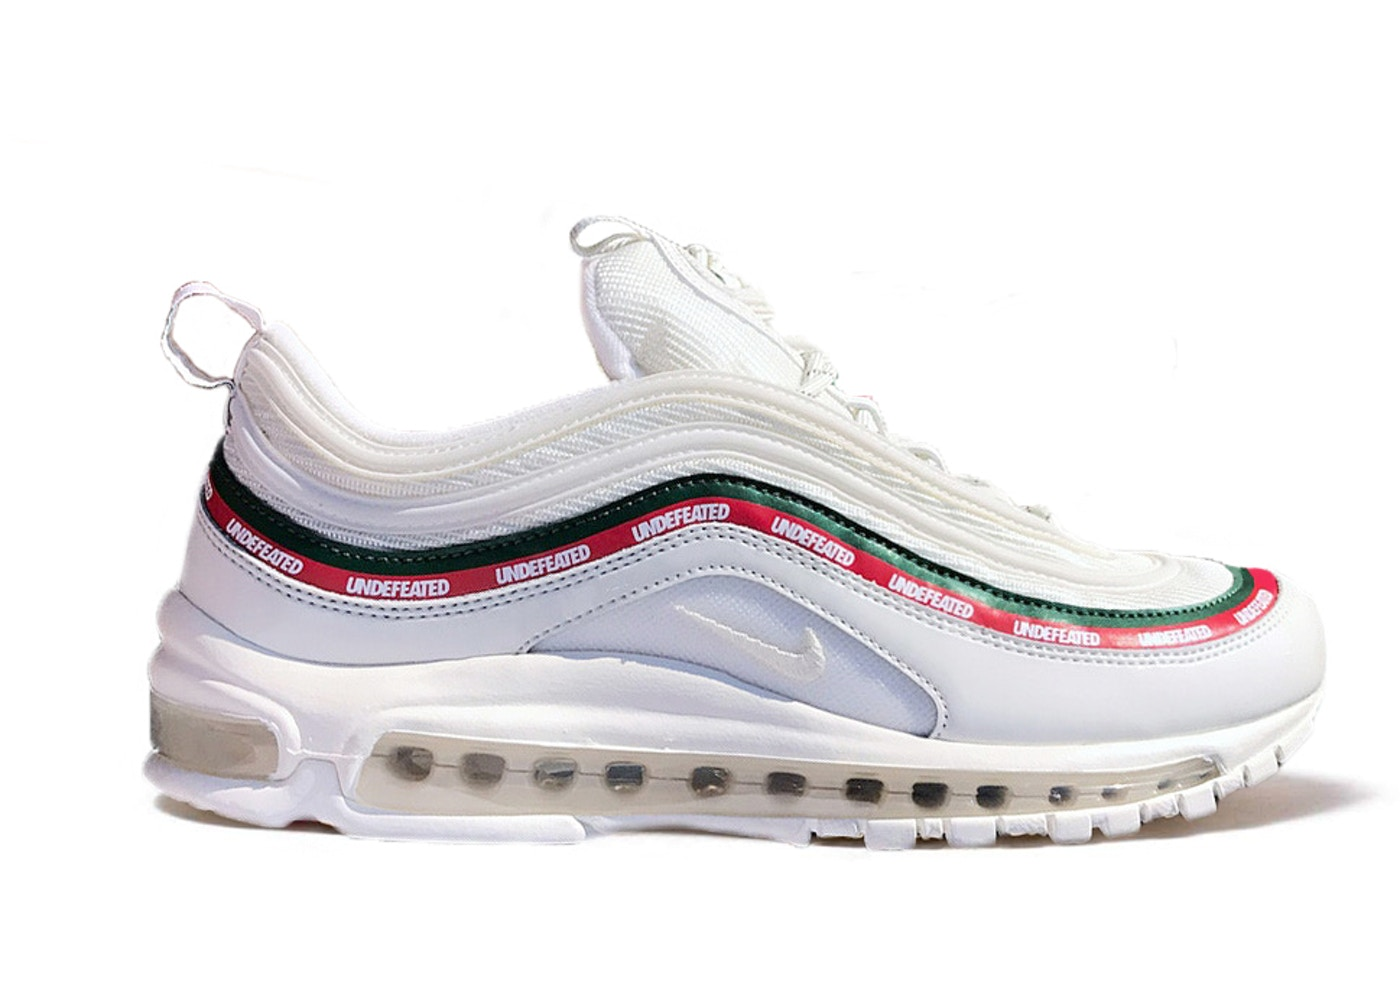 quality design 3a2e7 080bc Air Max 97 UNDFTD White